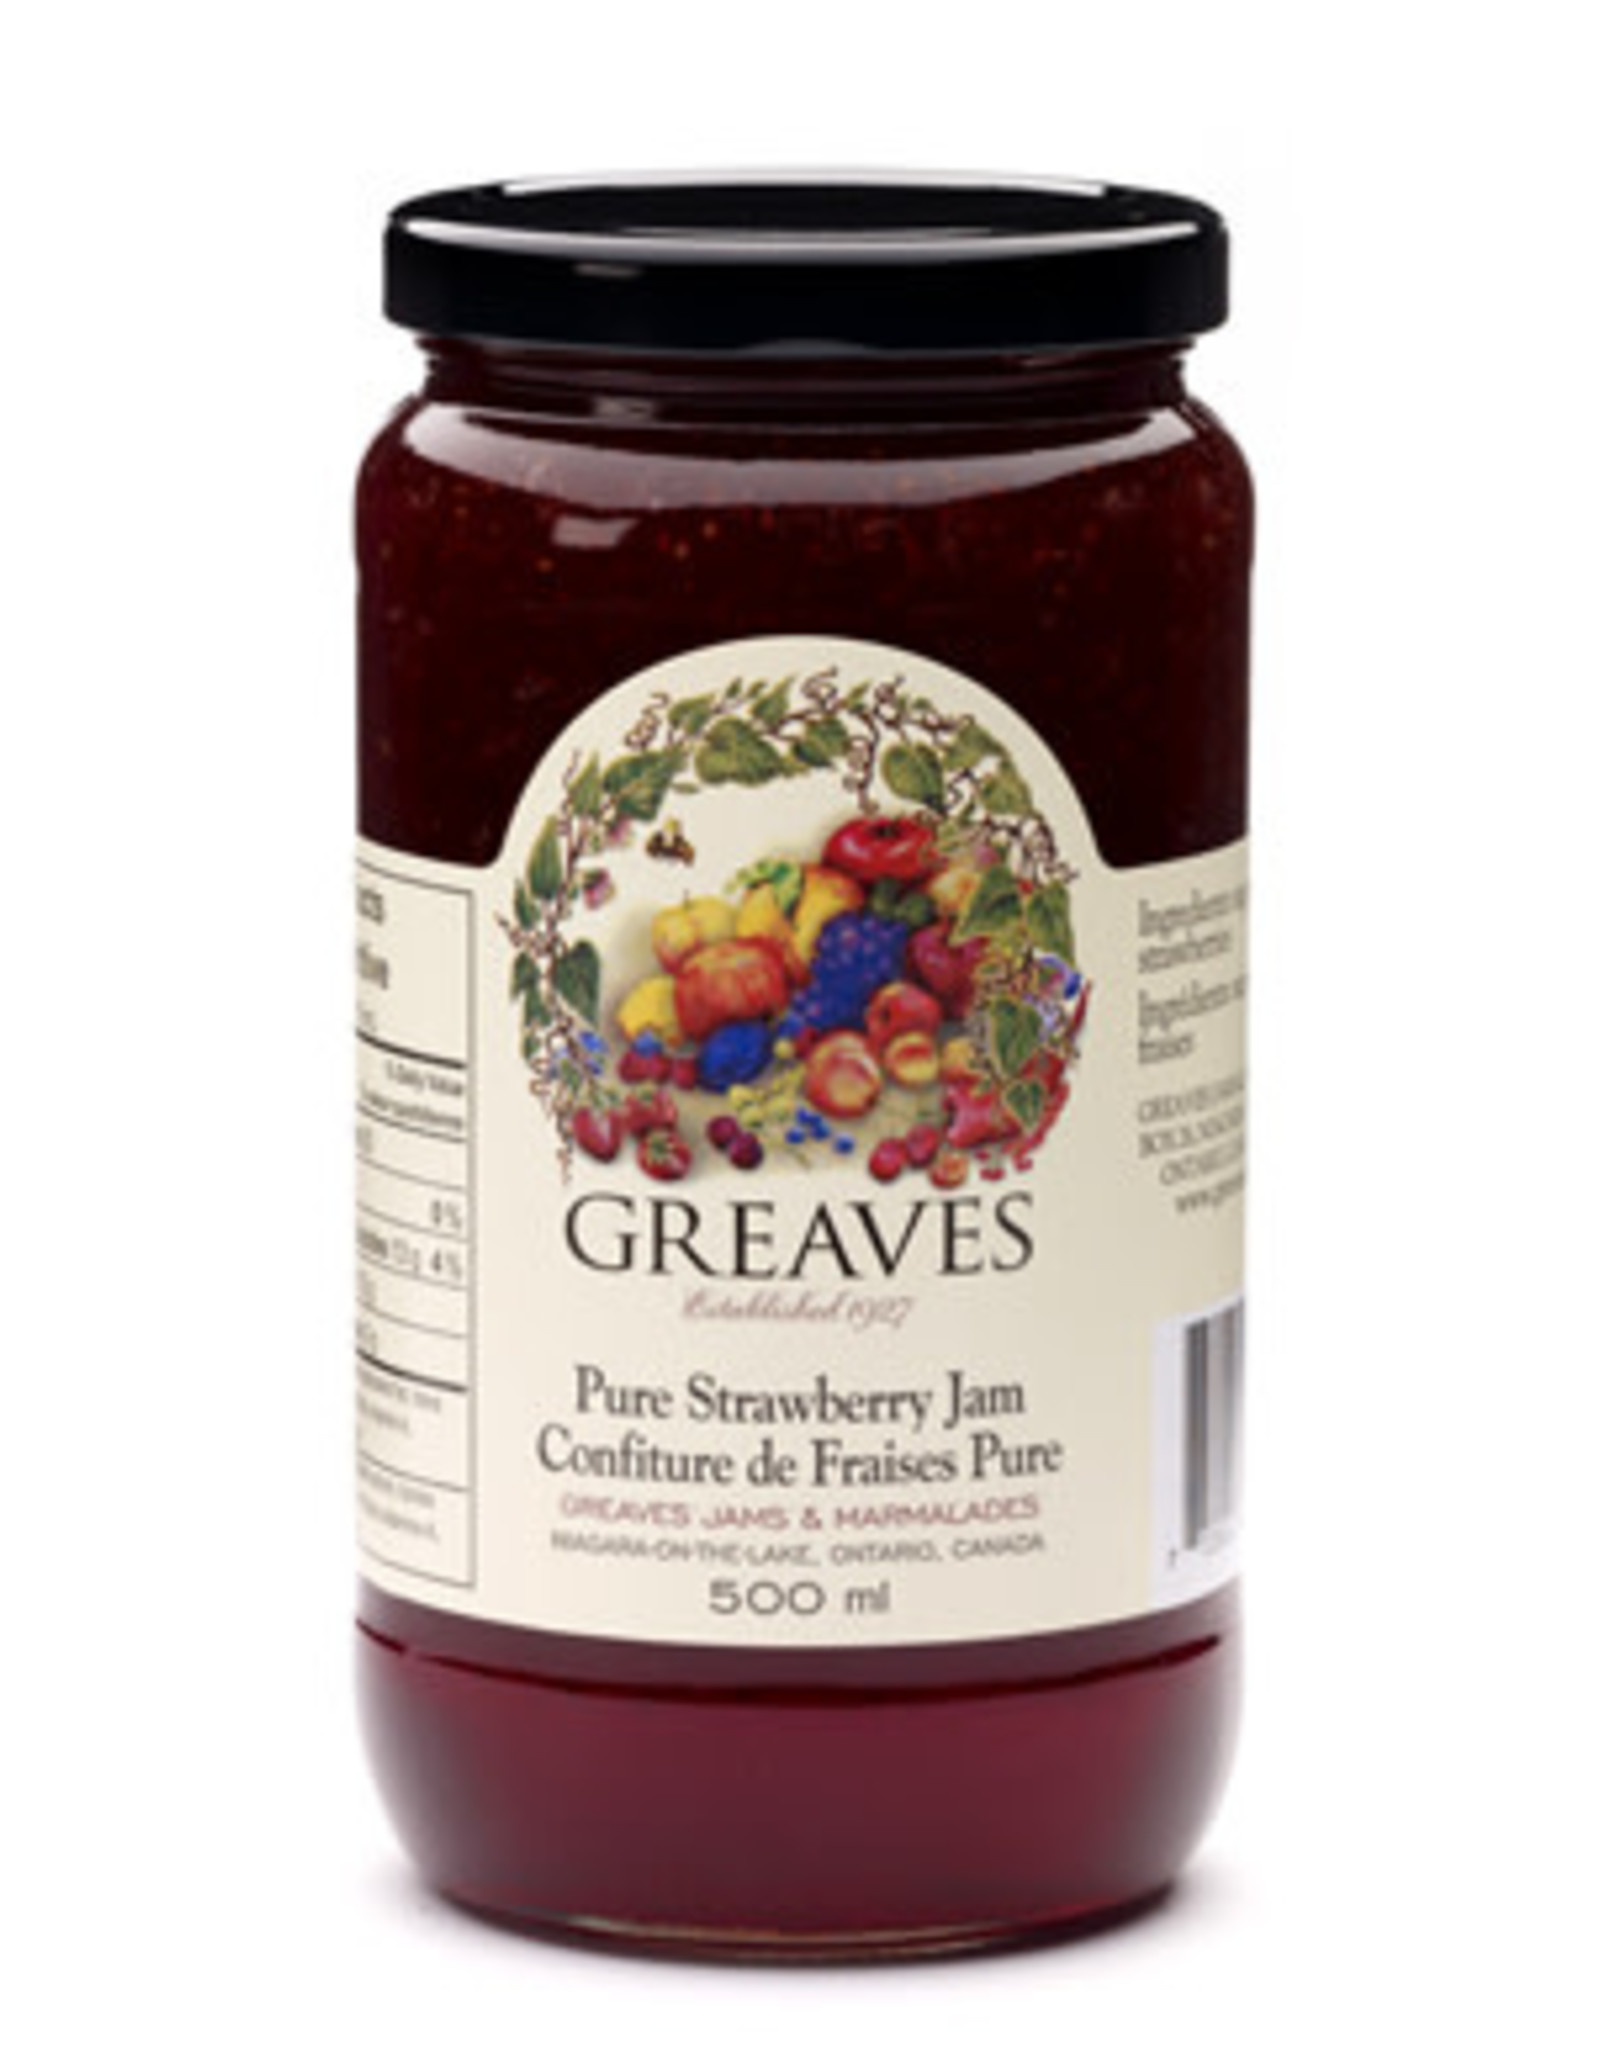 Greaves Jams & Marmalades Ltd. Greaves, Strawberry Jam, 500ml